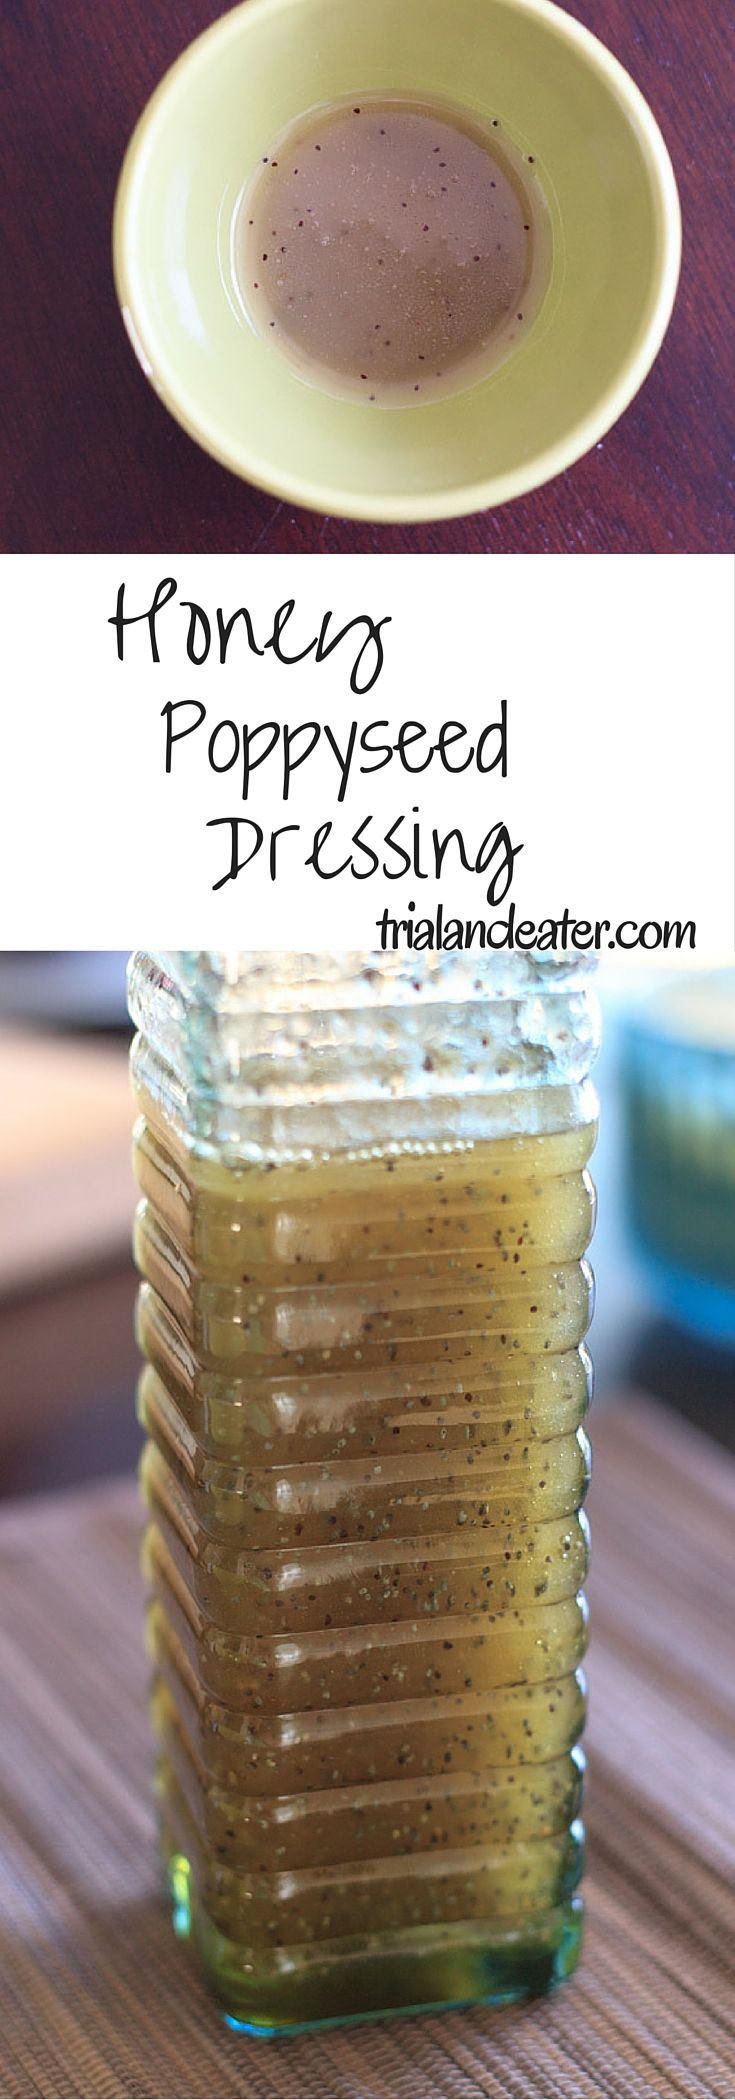 Honey Poppyseed Dressing - A slightly sweet vinaigrette dressing that goes great with fruit or salad.